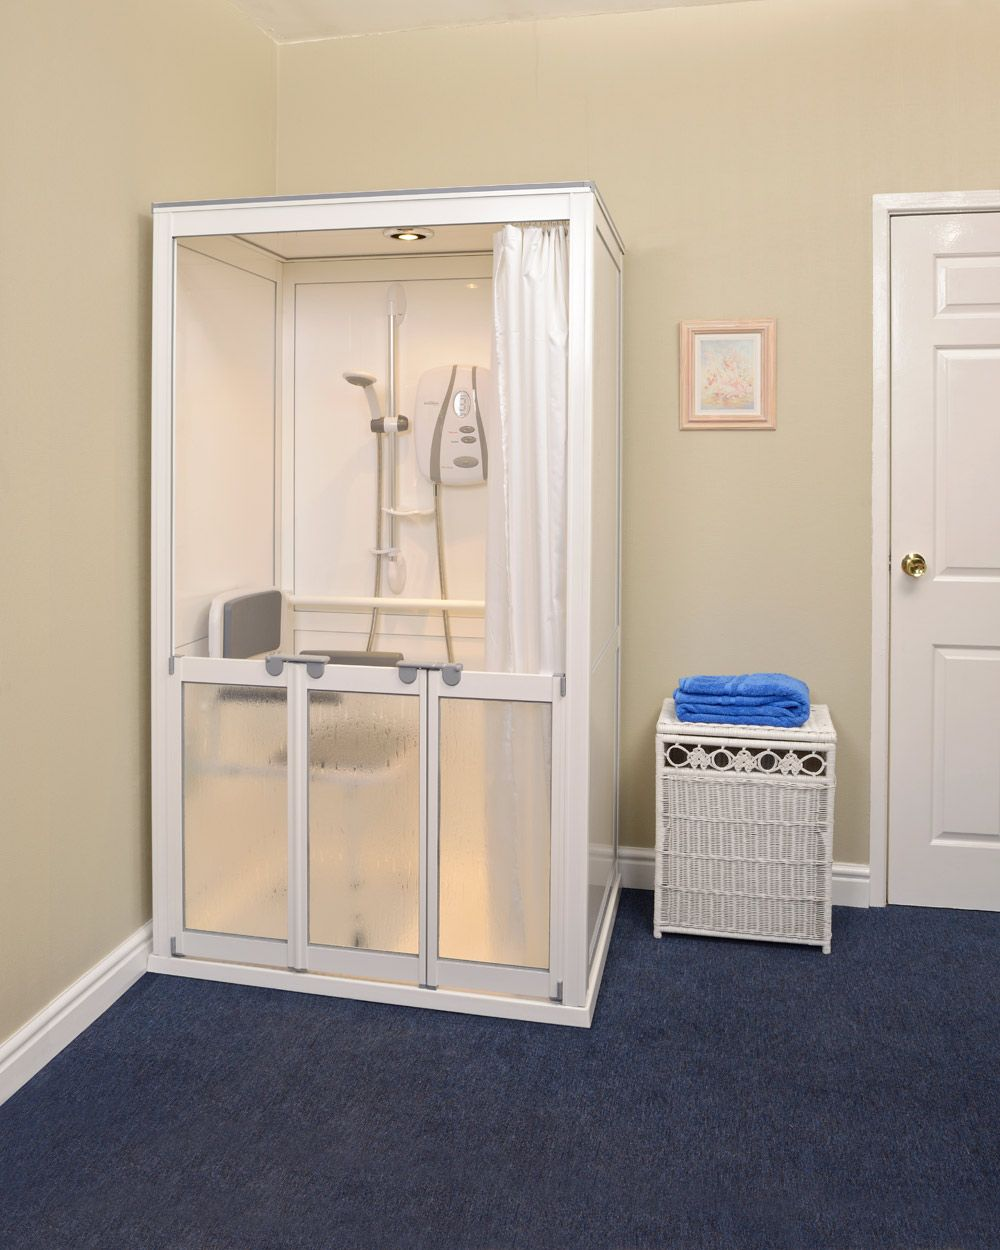 Cubicle Enclosures | Self Contained Cubicle Shower Enclosures ...